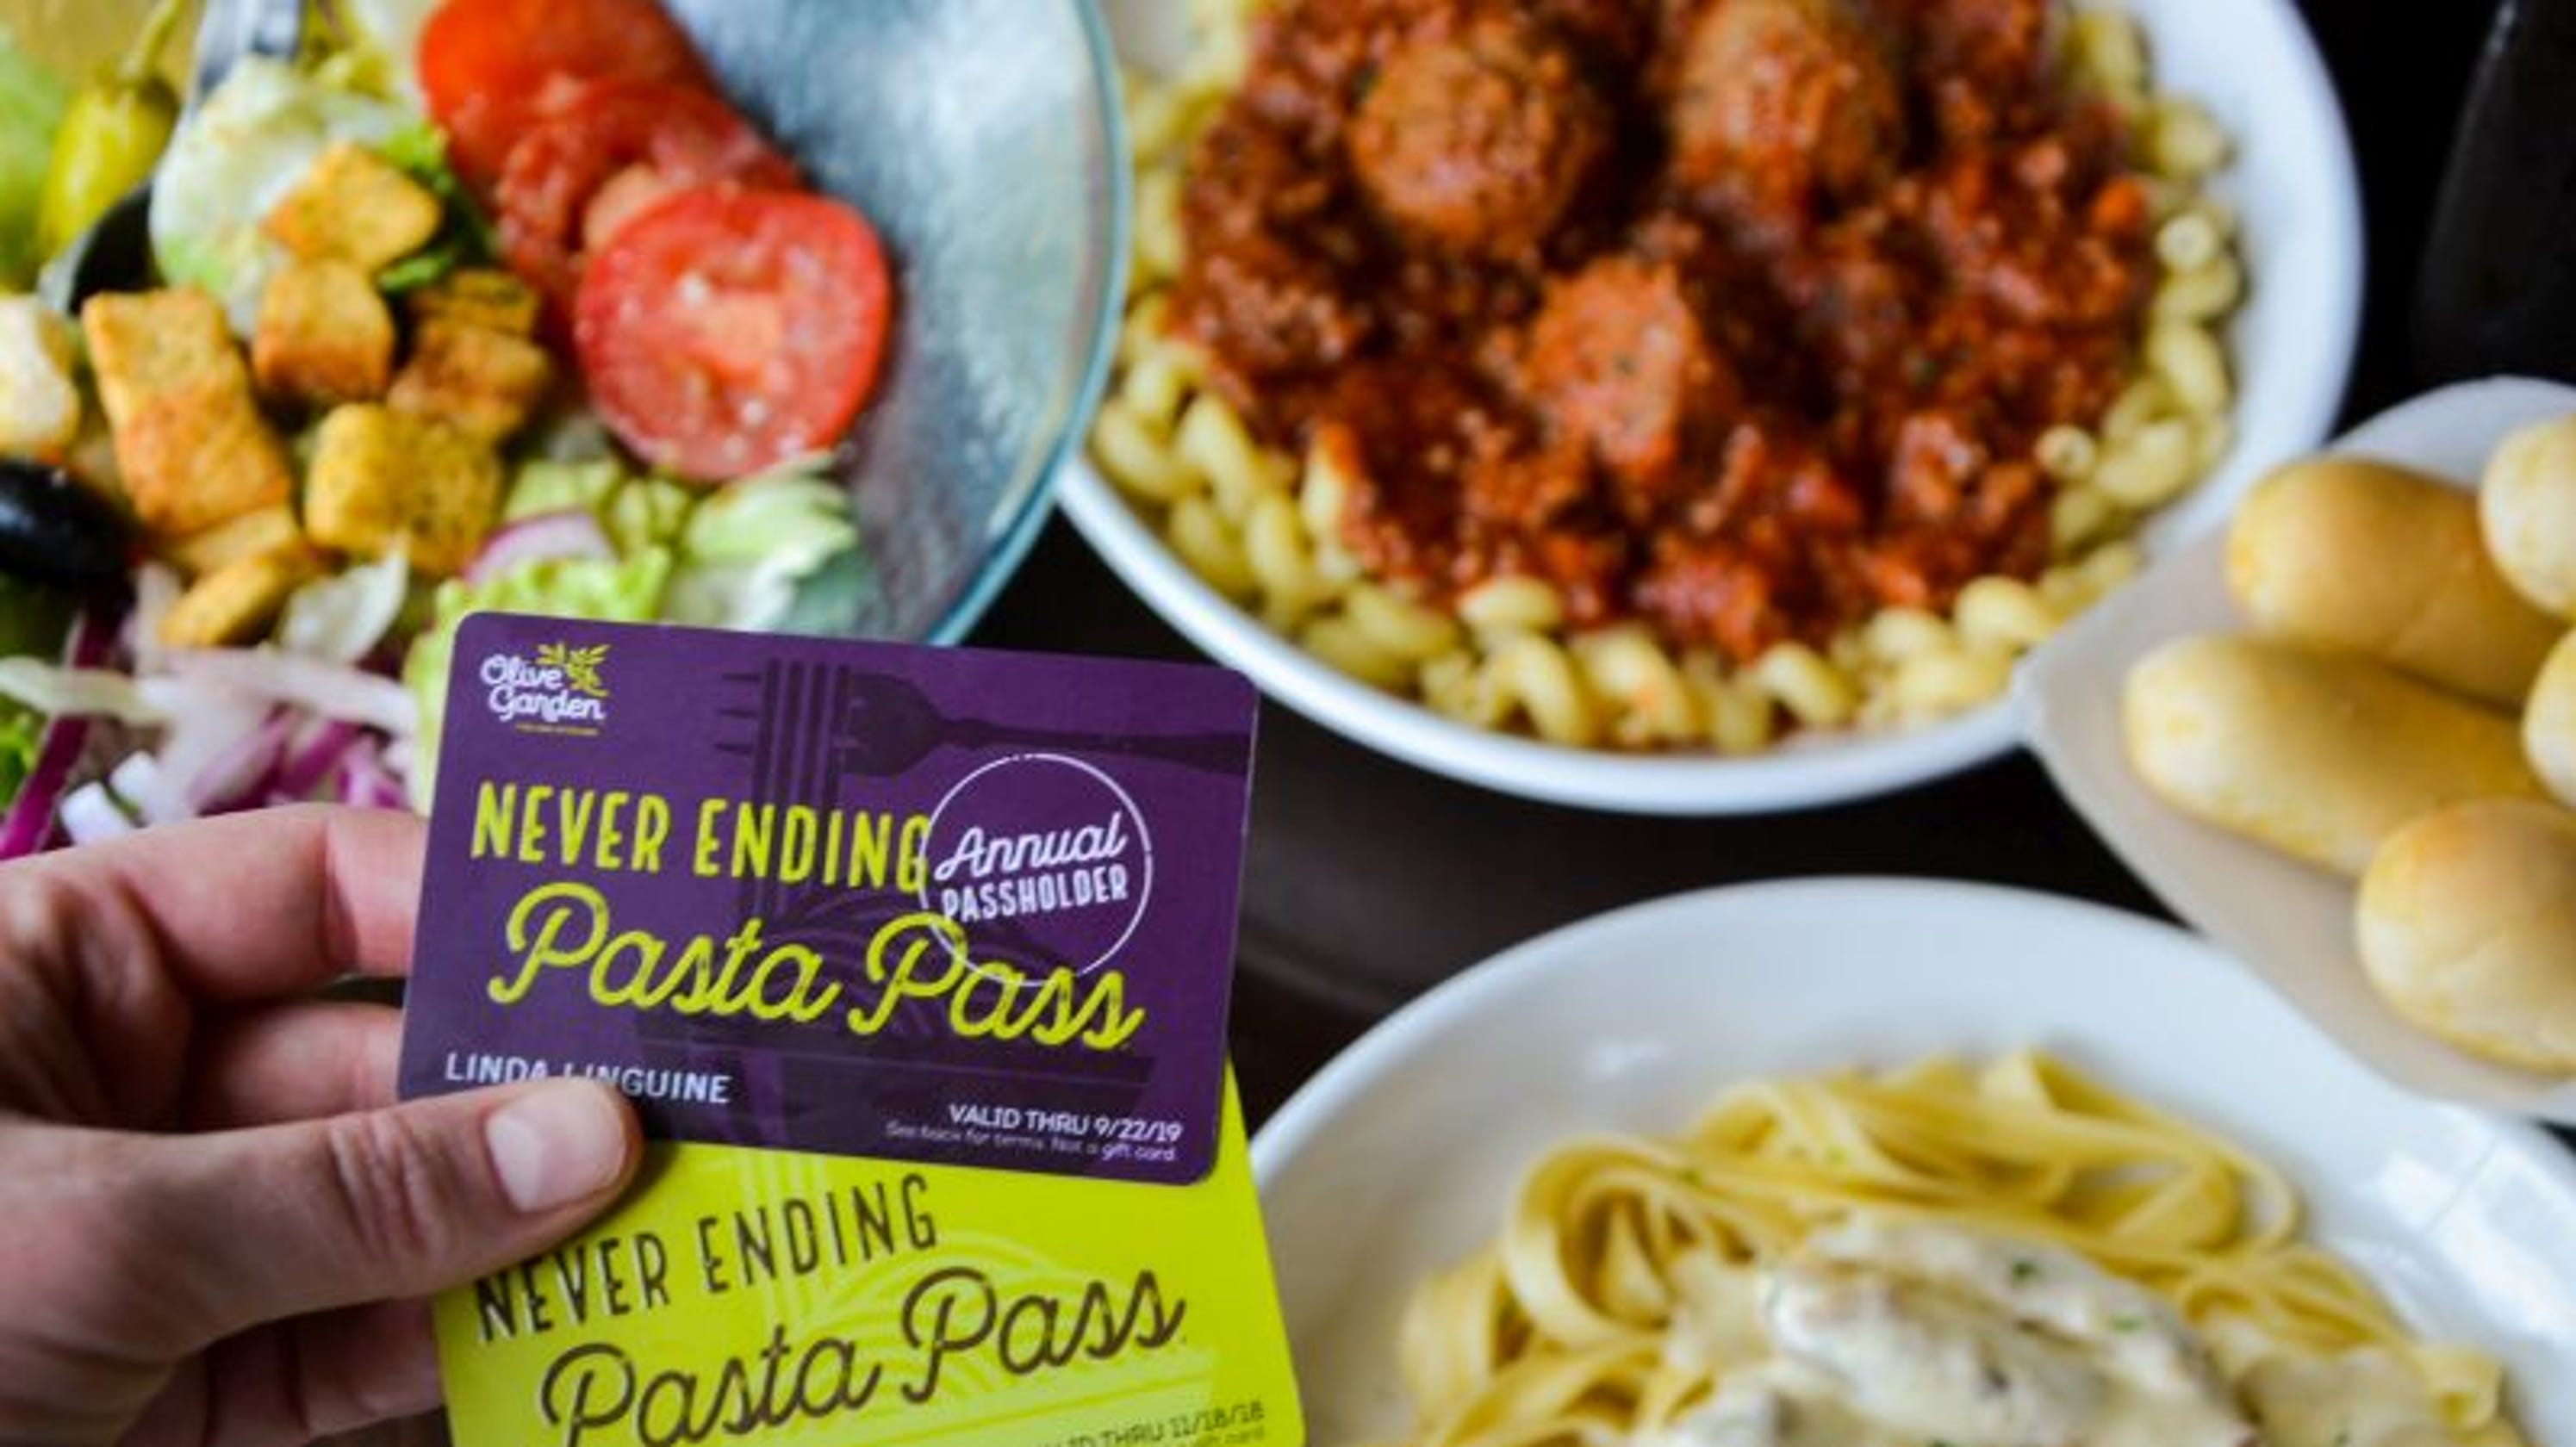 Olive garden pasta pass is it worth it - Does olive garden deliver to your house ...